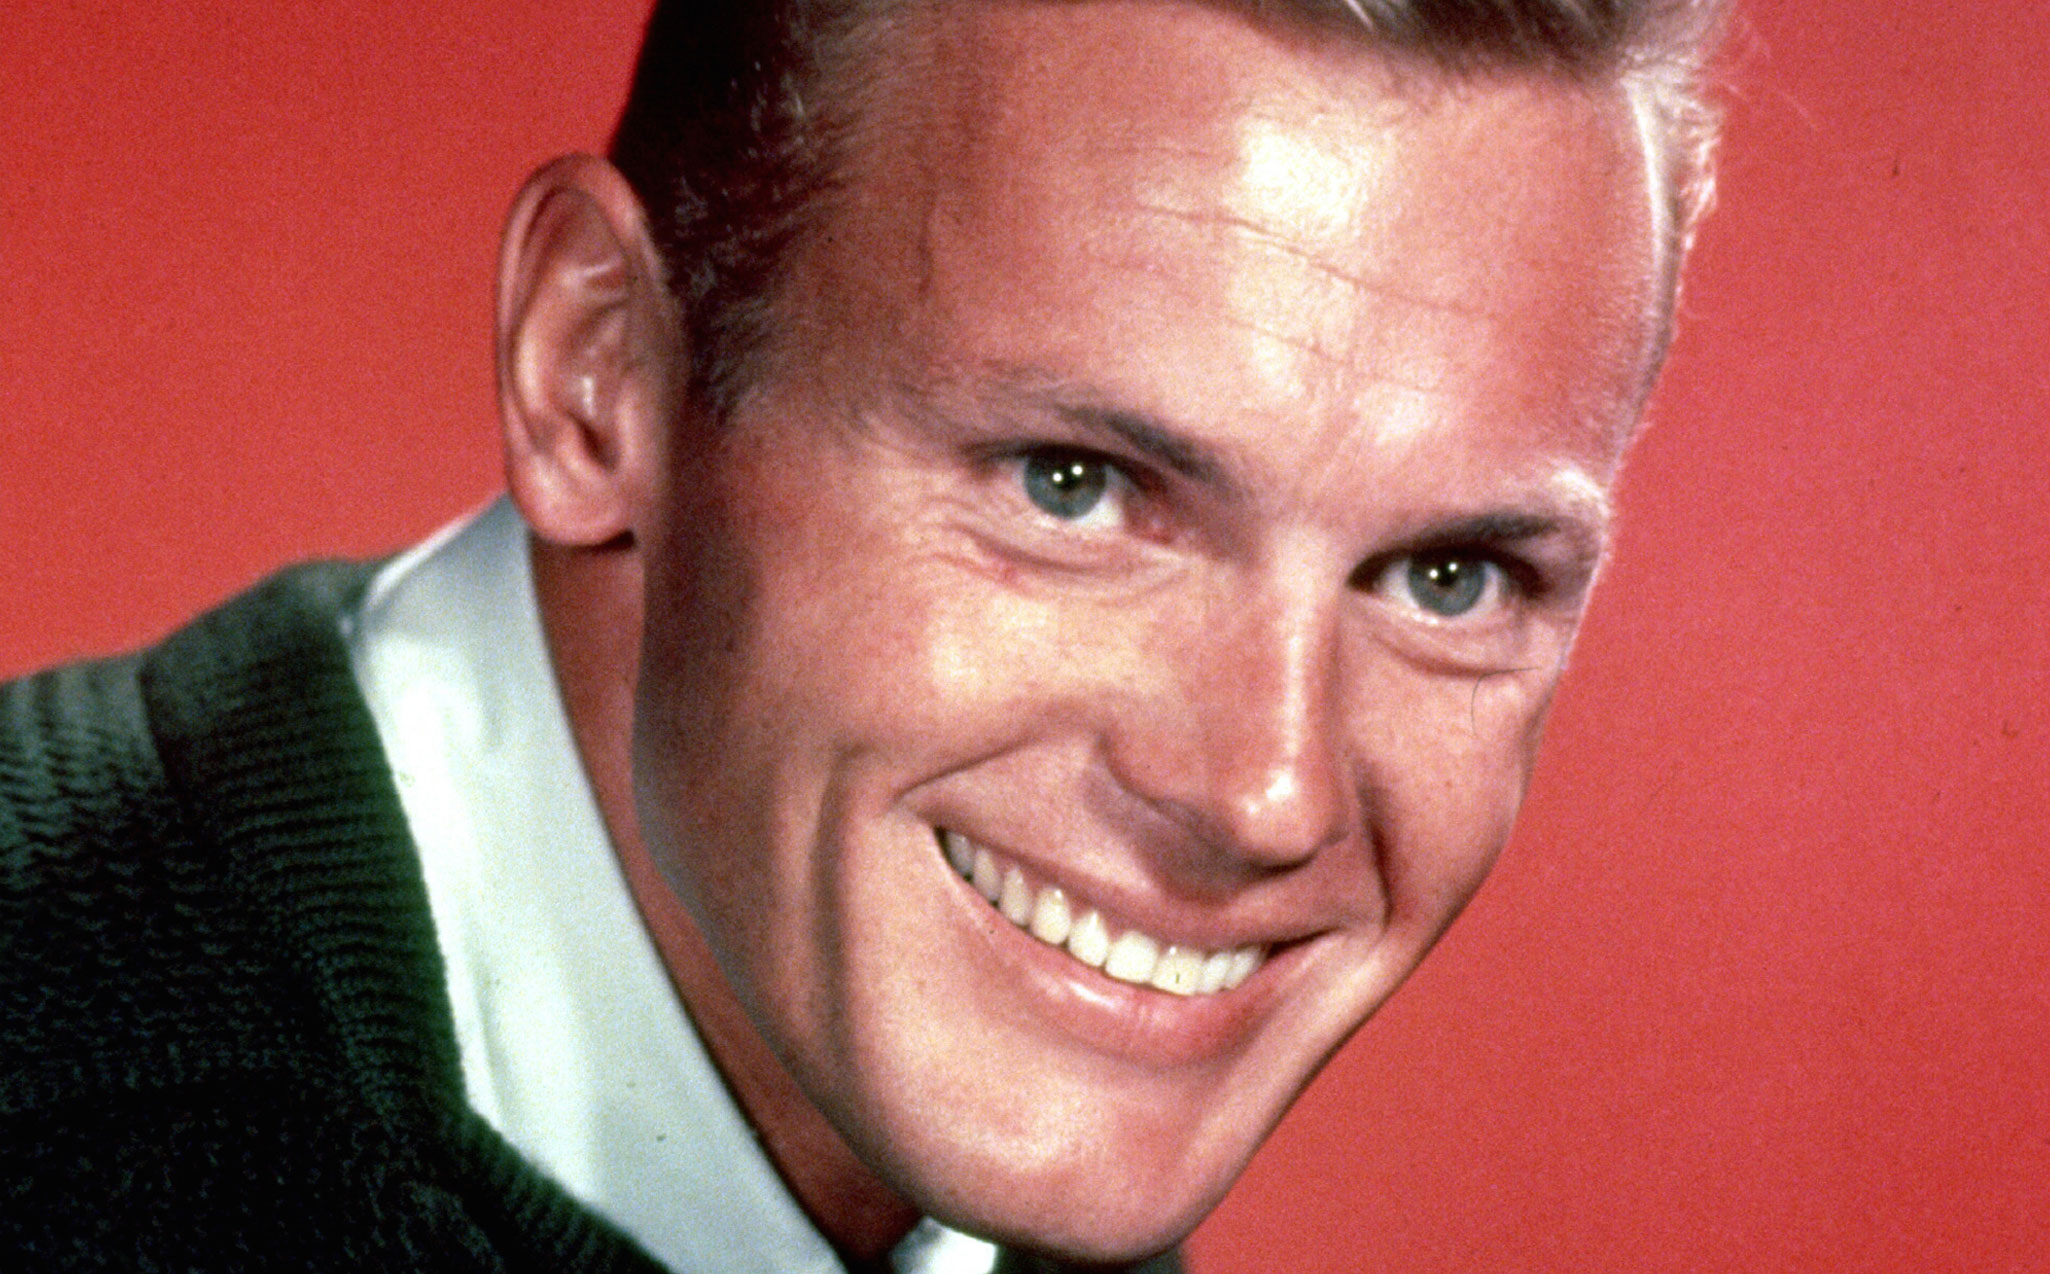 TAB HUNTER CONFIDENTIAL with TABHUNTER in person